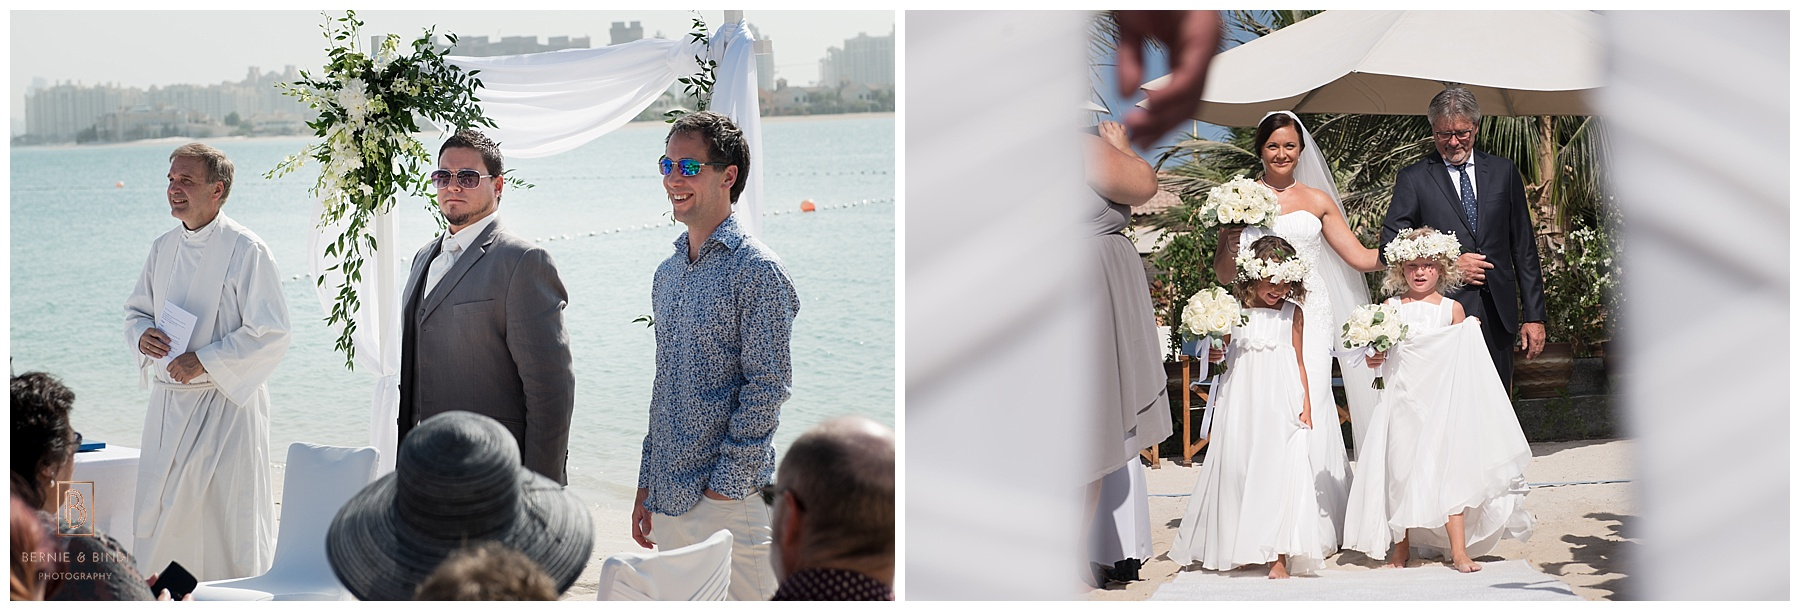 Beach Wedding - Anantara_0206